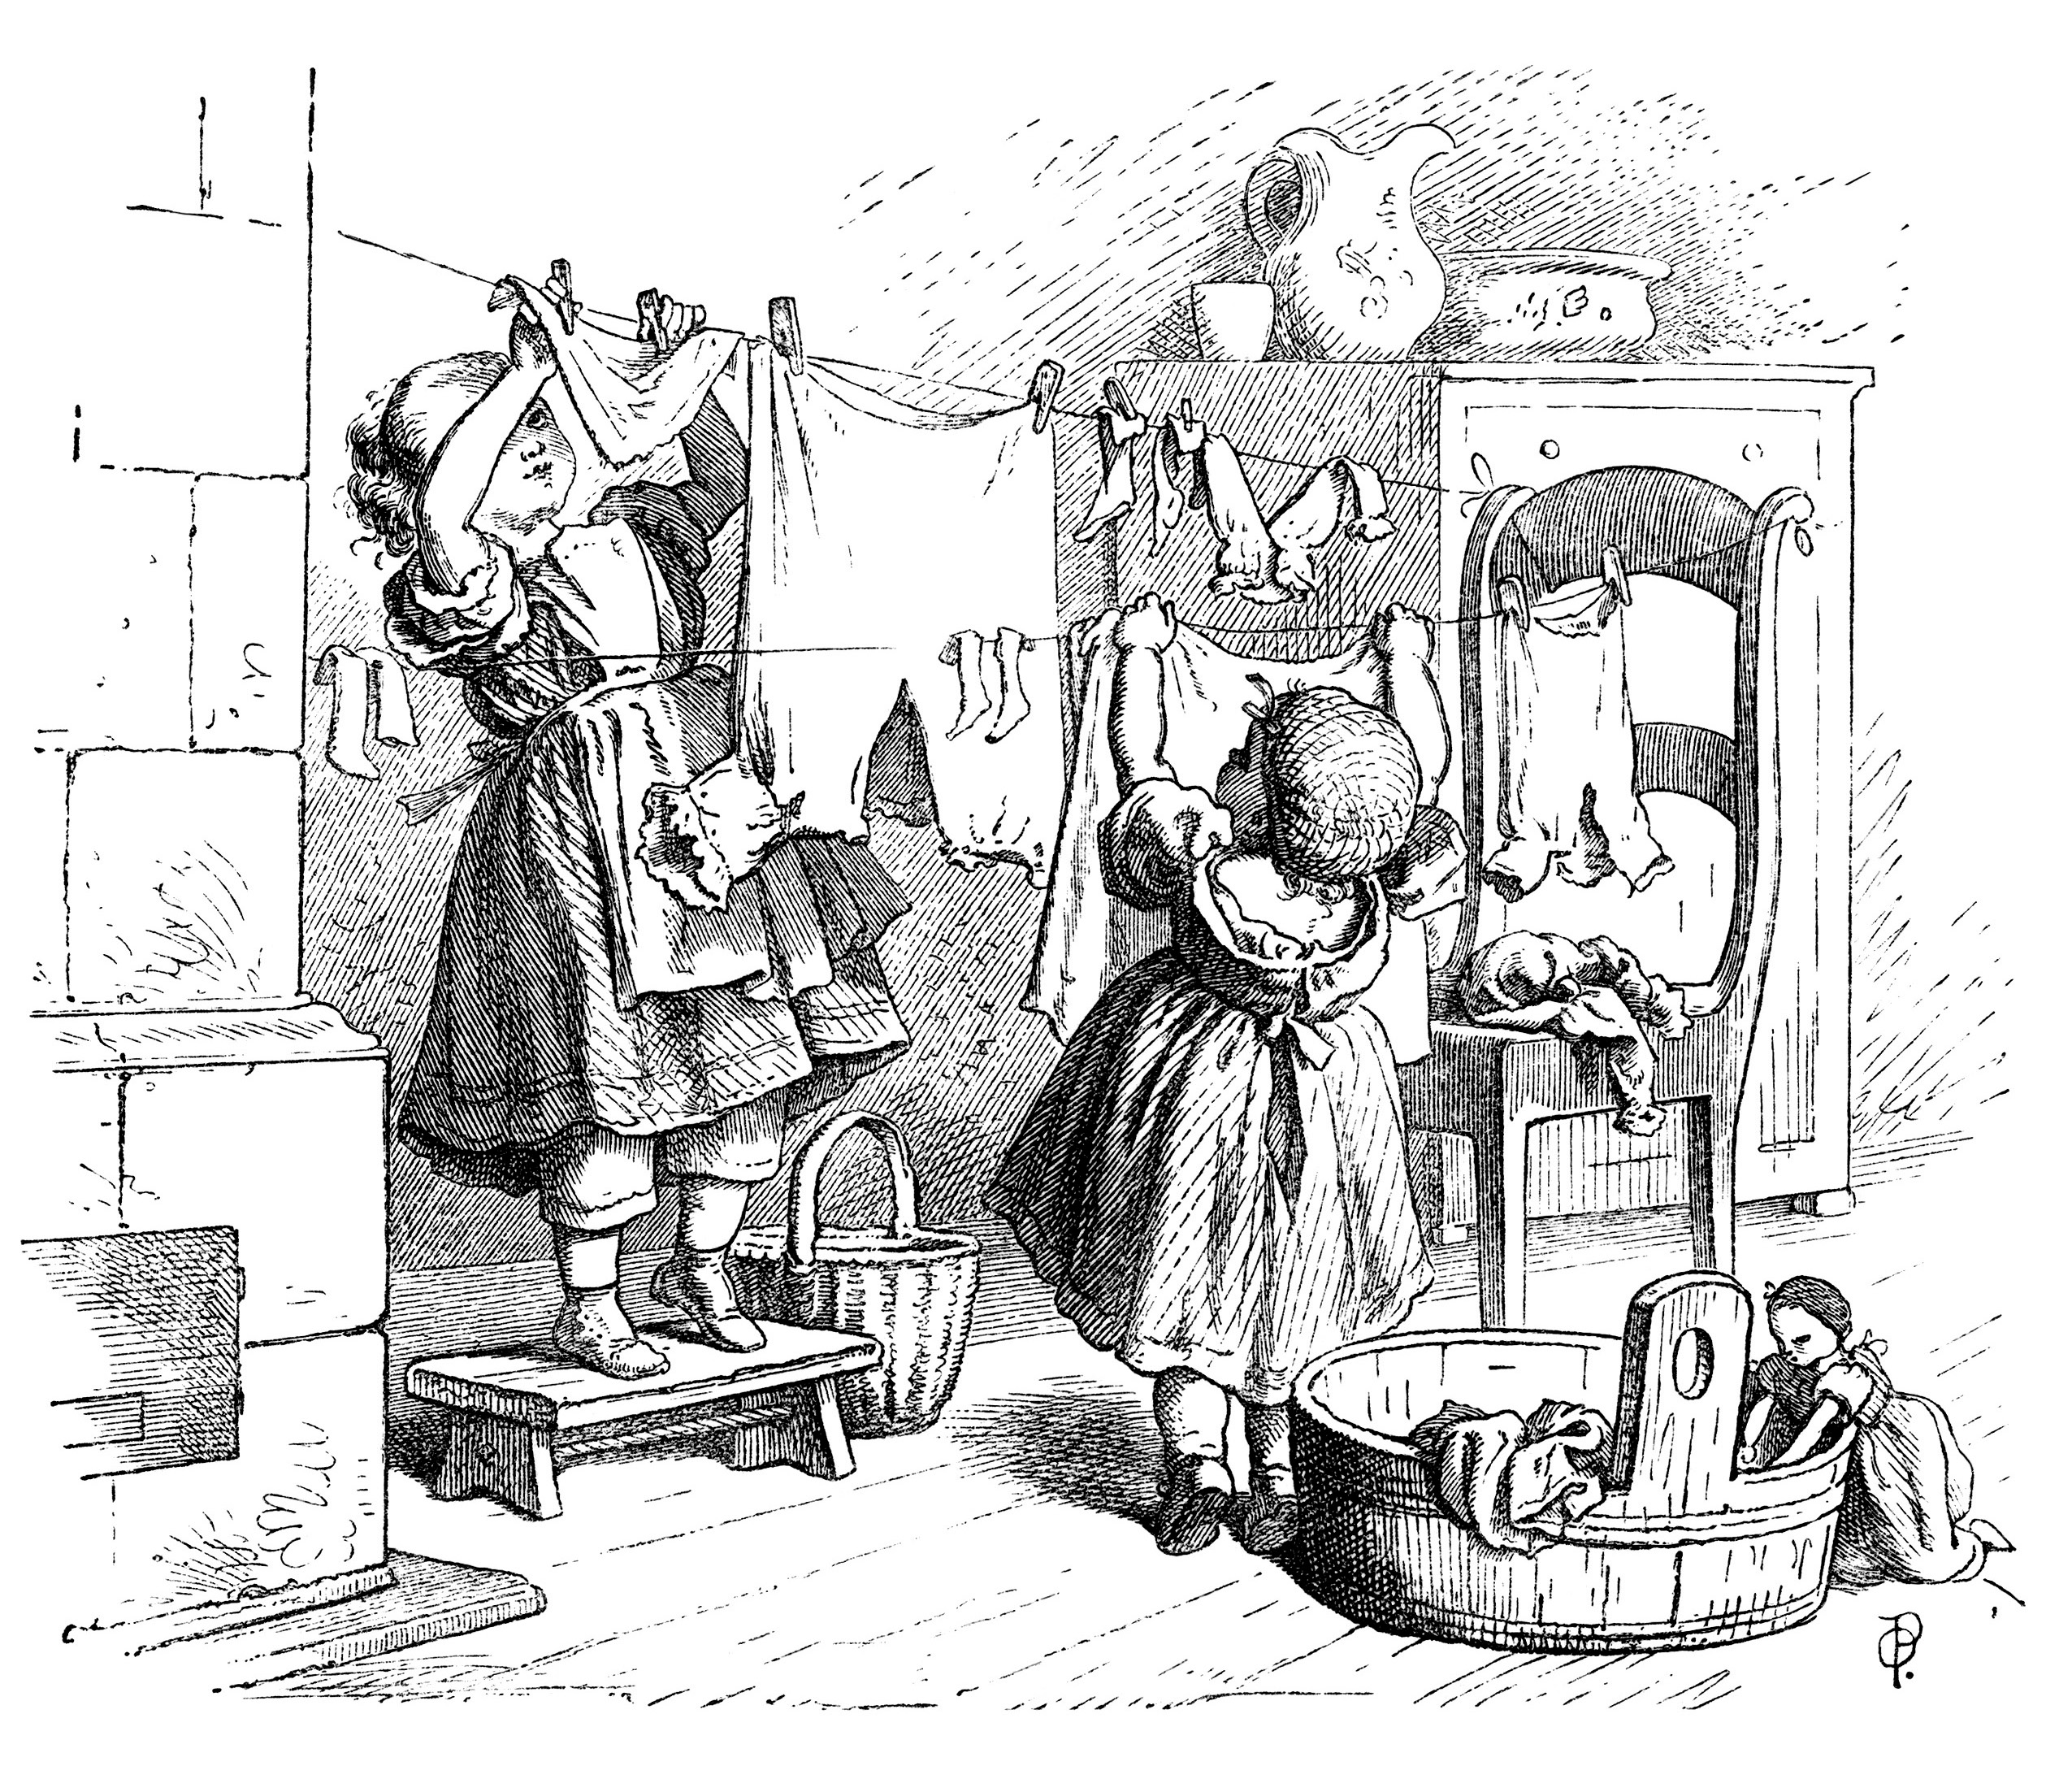 black and white clip art, Oscar pletsch engraving, Victorian girls printable, girls at play vintage clip art, hanging doll clothes